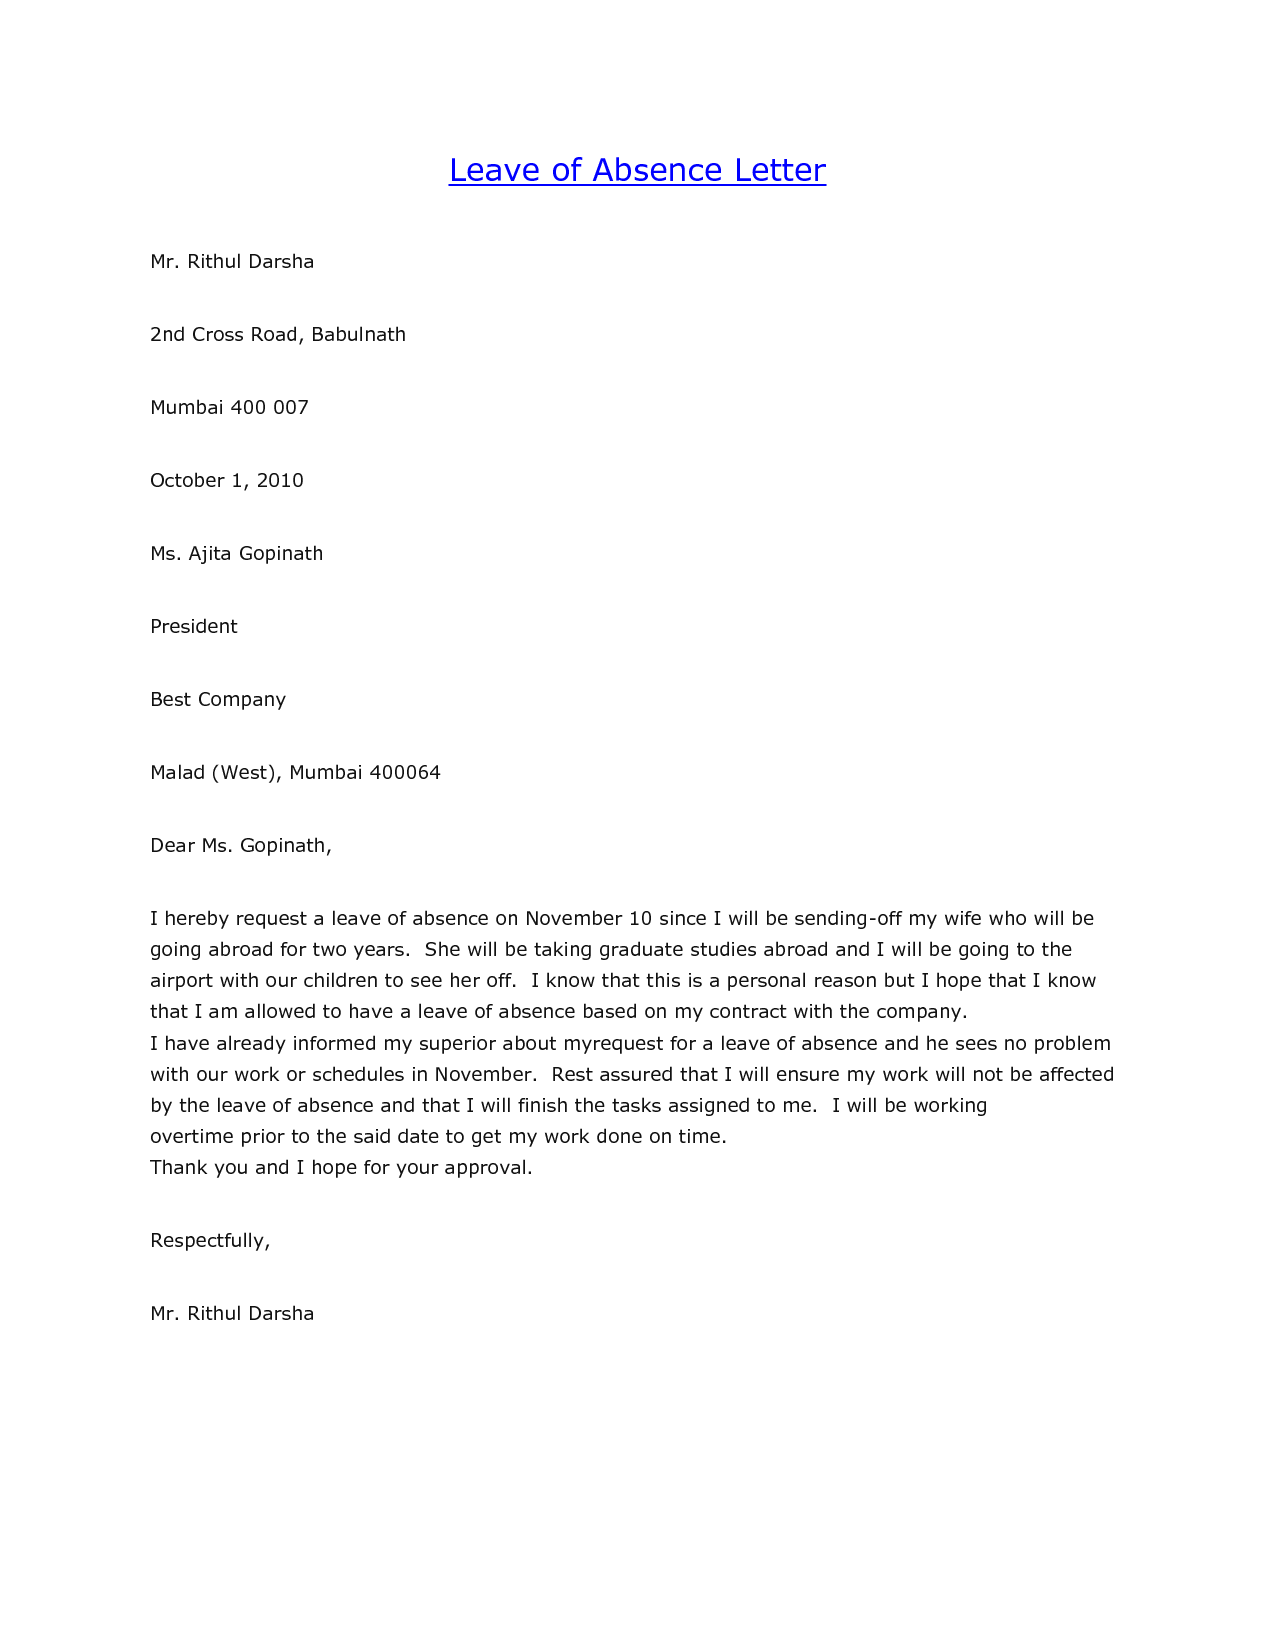 Leave of absence letter from employer mersnoforum leave thecheapjerseys Image collections